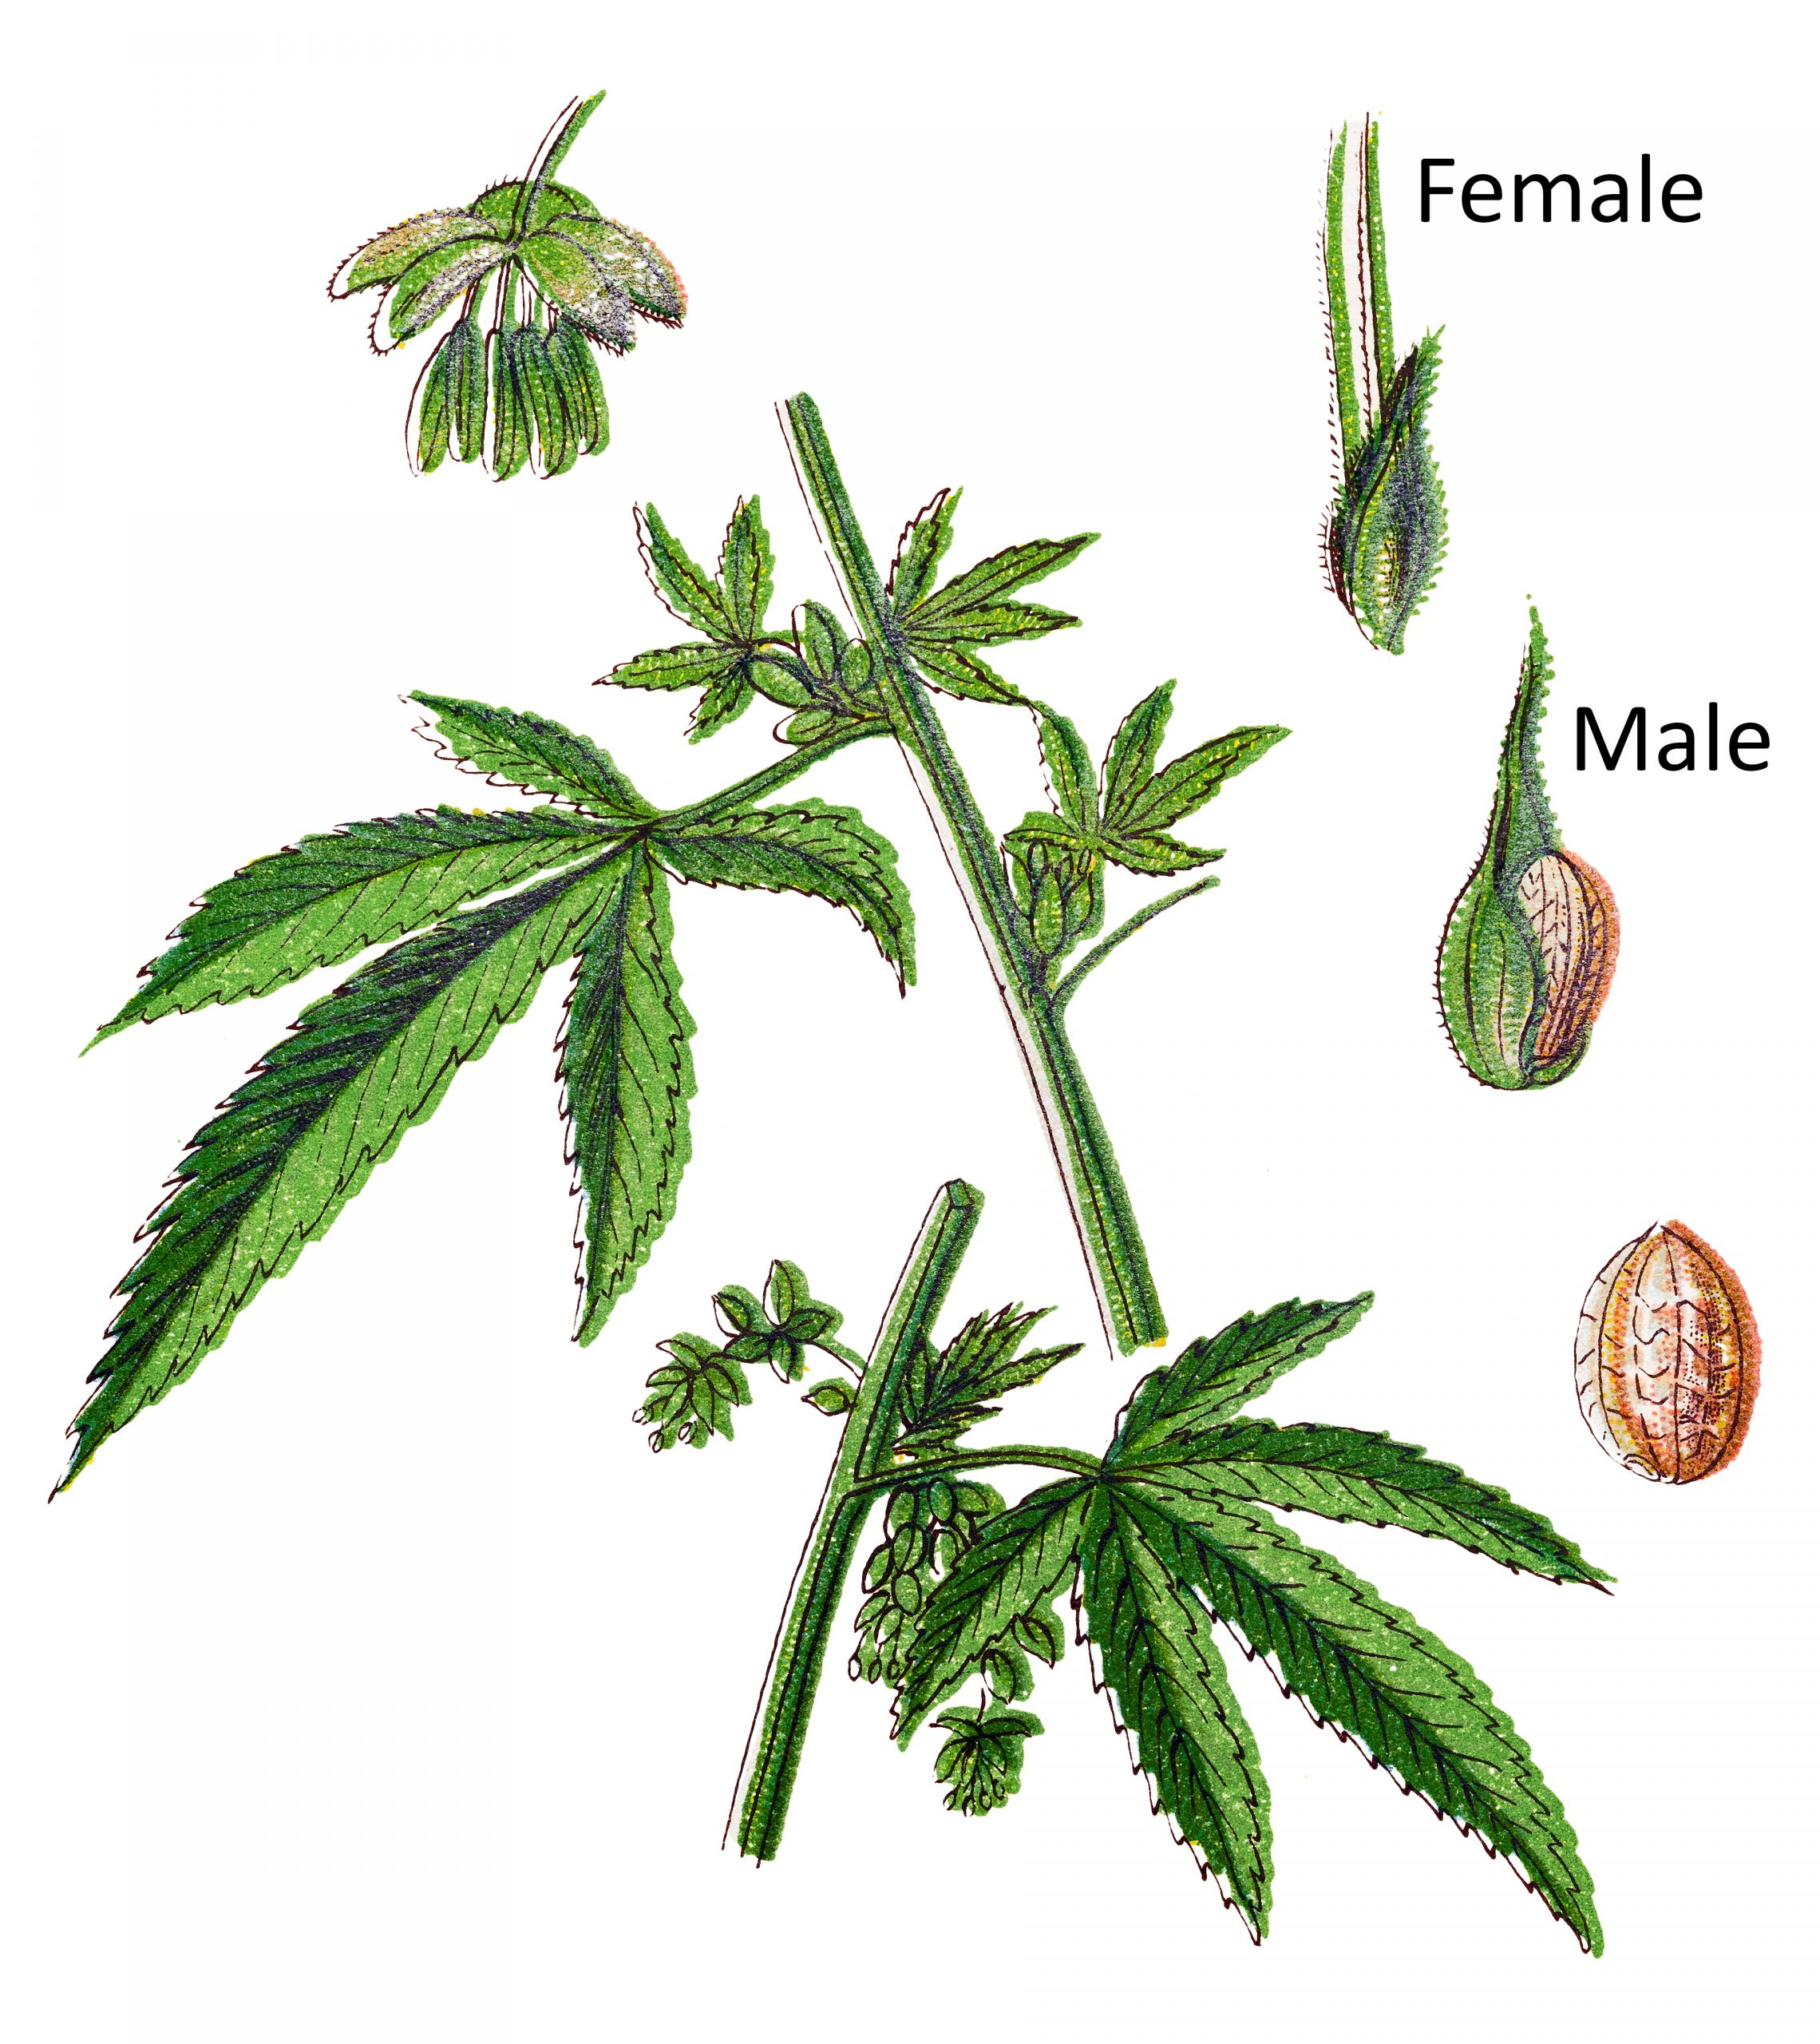 Male Vs Female Cannabis Plant Anding Guide